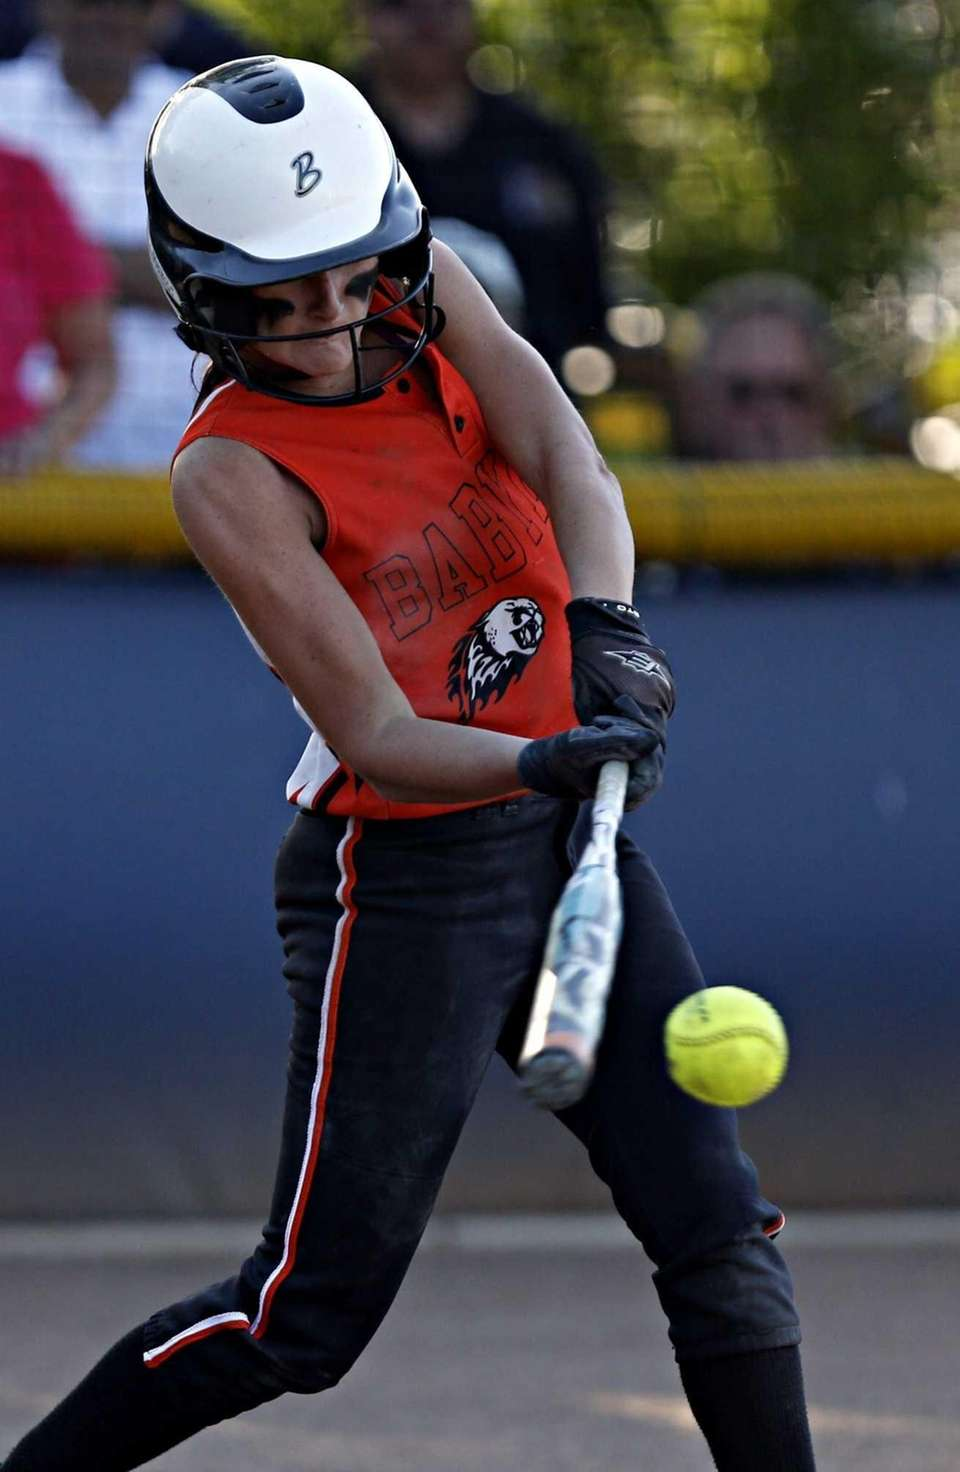 Babylon's Bridgette Rohl smacks a single in the